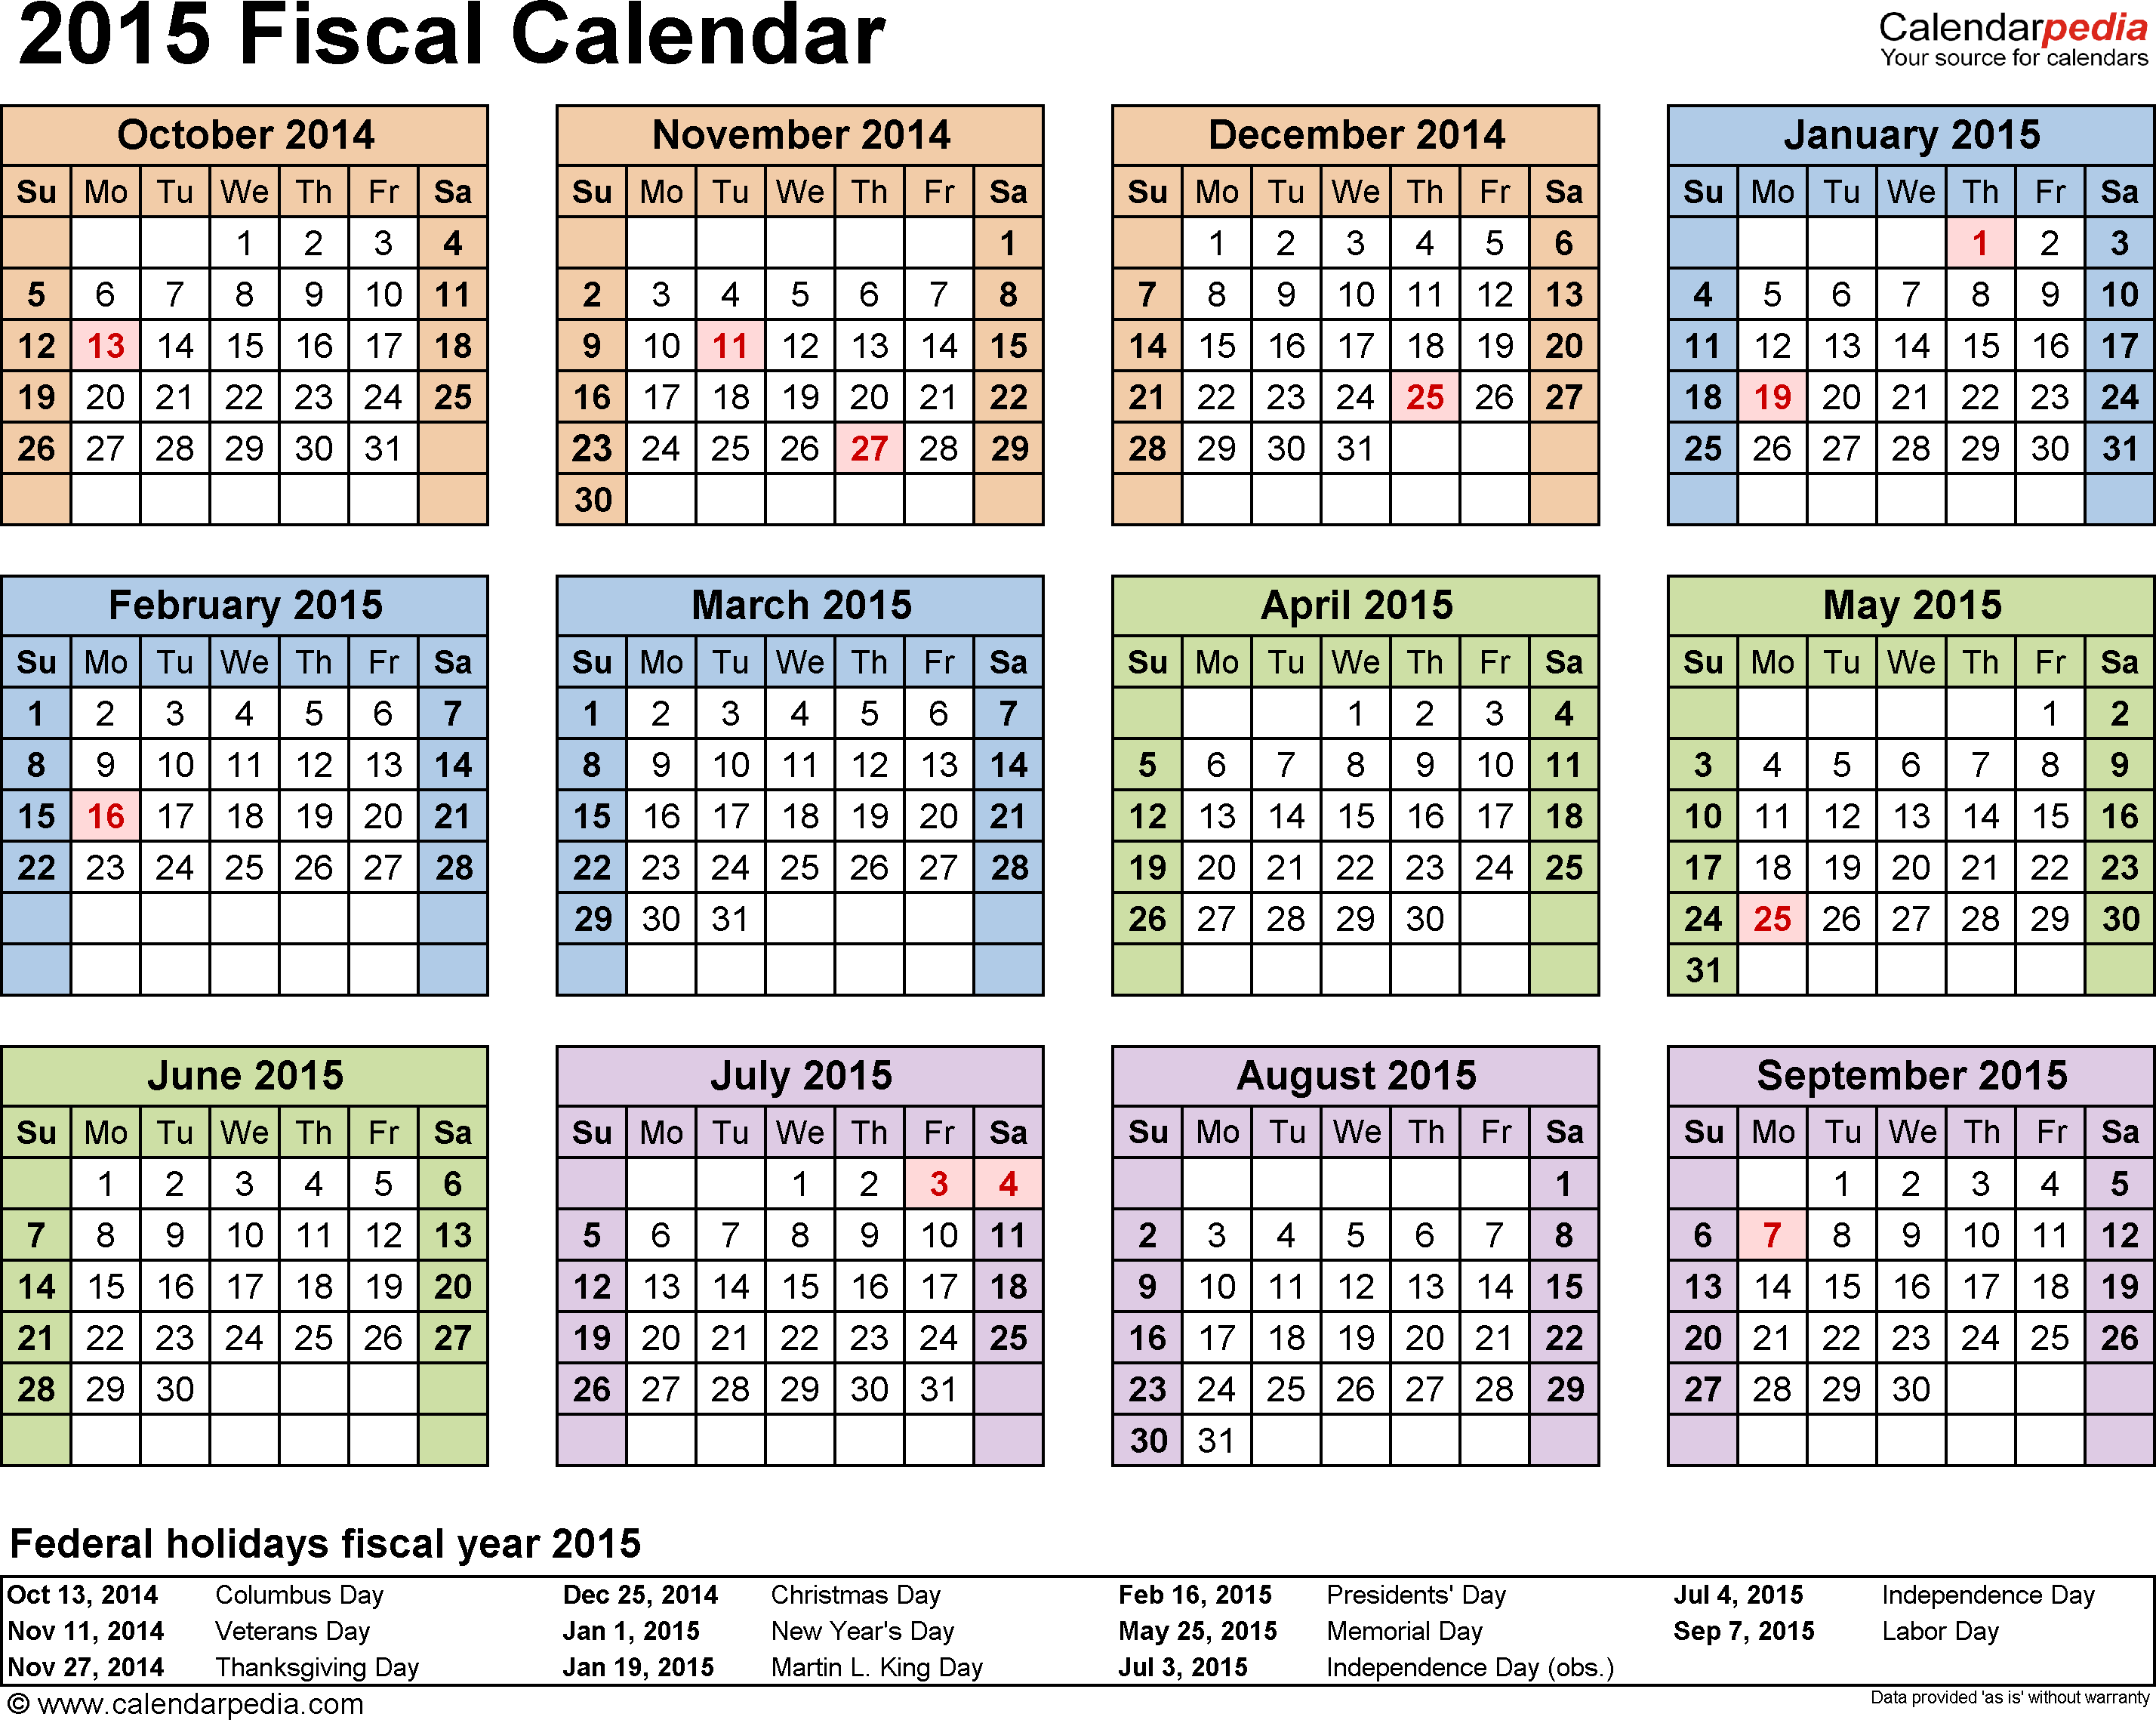 Template 4: Fiscal year calendar 2015 for PDF, landscape orientation, year at a glance, 1 page